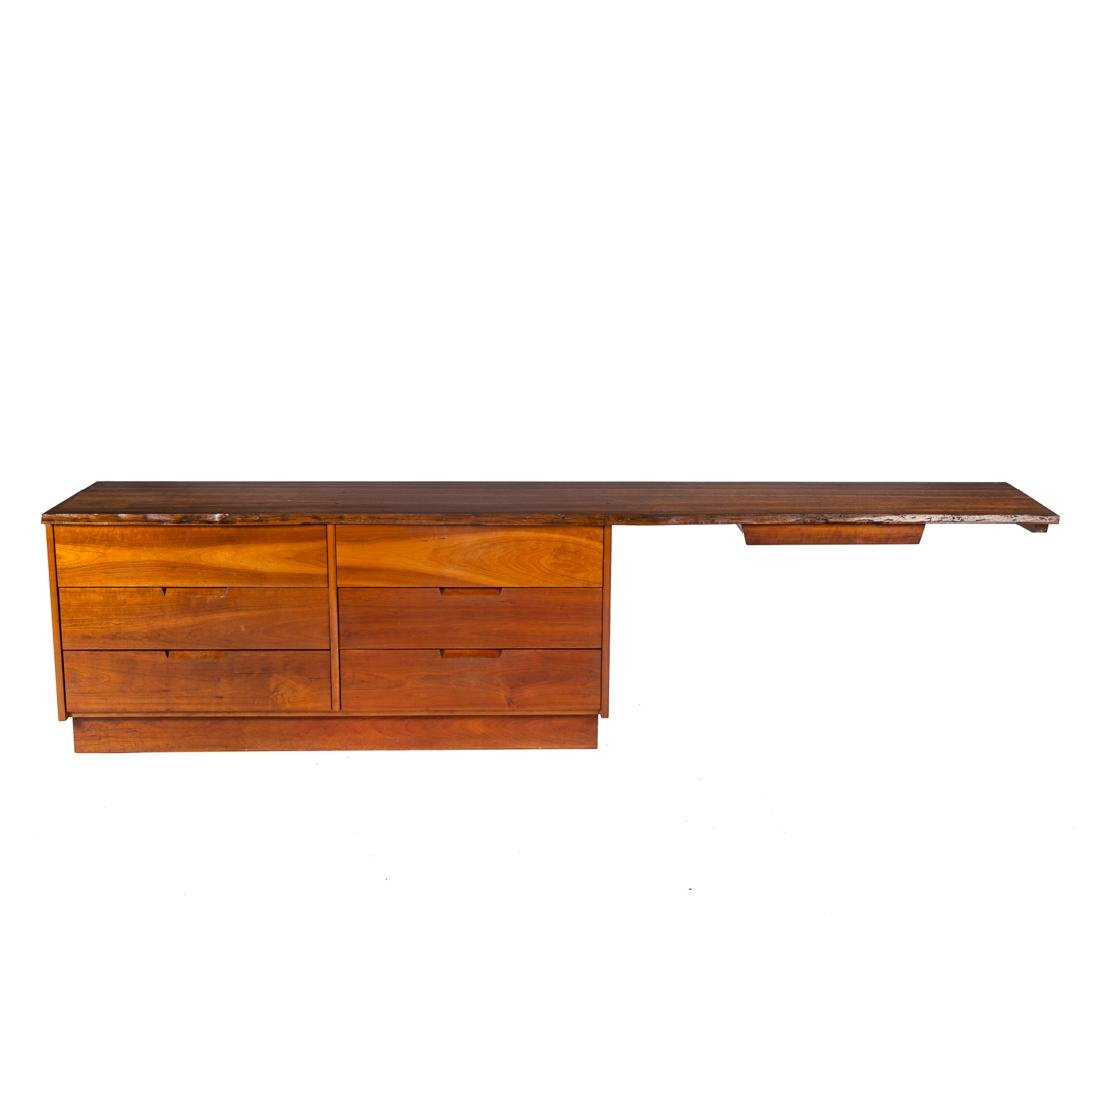 George Nakashima Custom Double Dresser / Desk